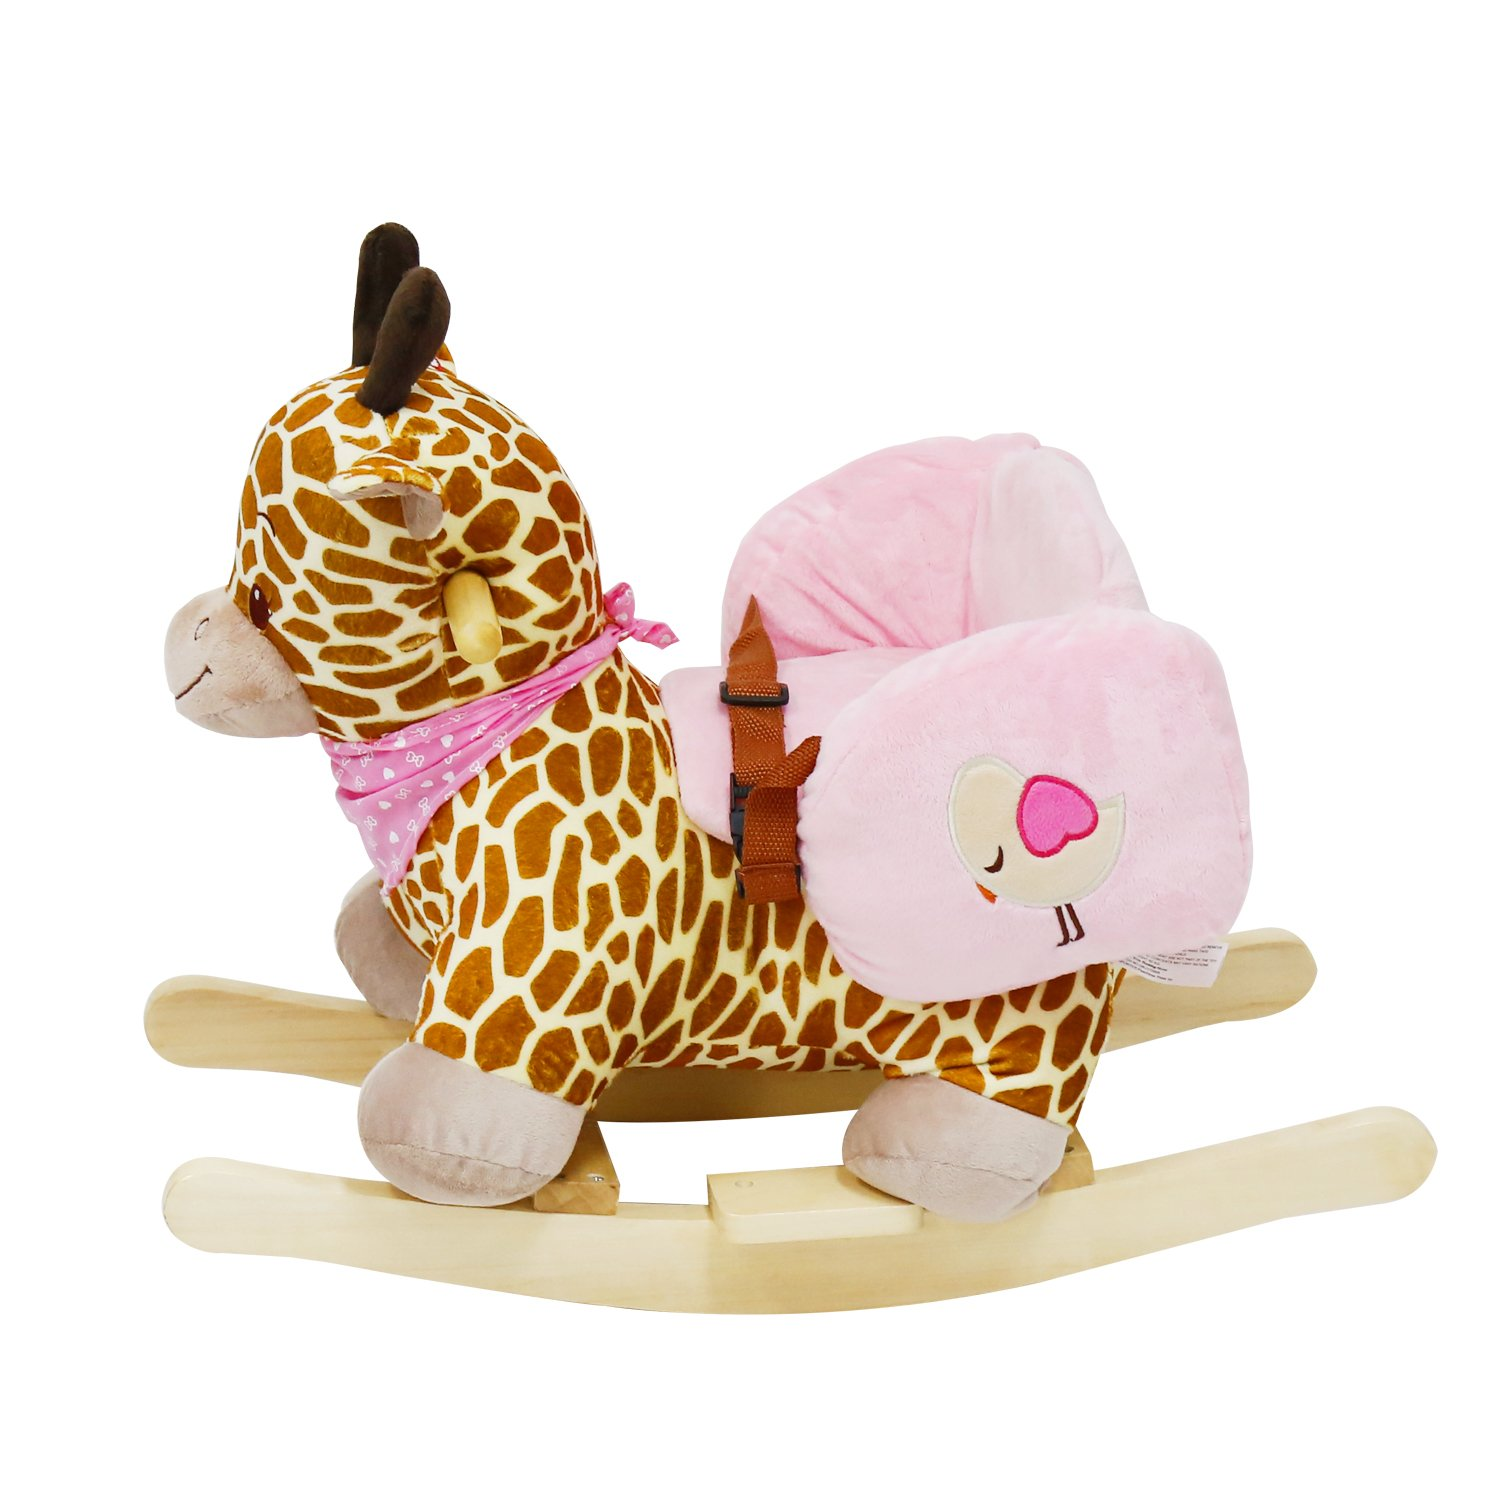 Birthday Gift Kinbor Brown Wooden Rocking Horse Plush Toys Rocker with Sound for Kids Ages 2-3 Years